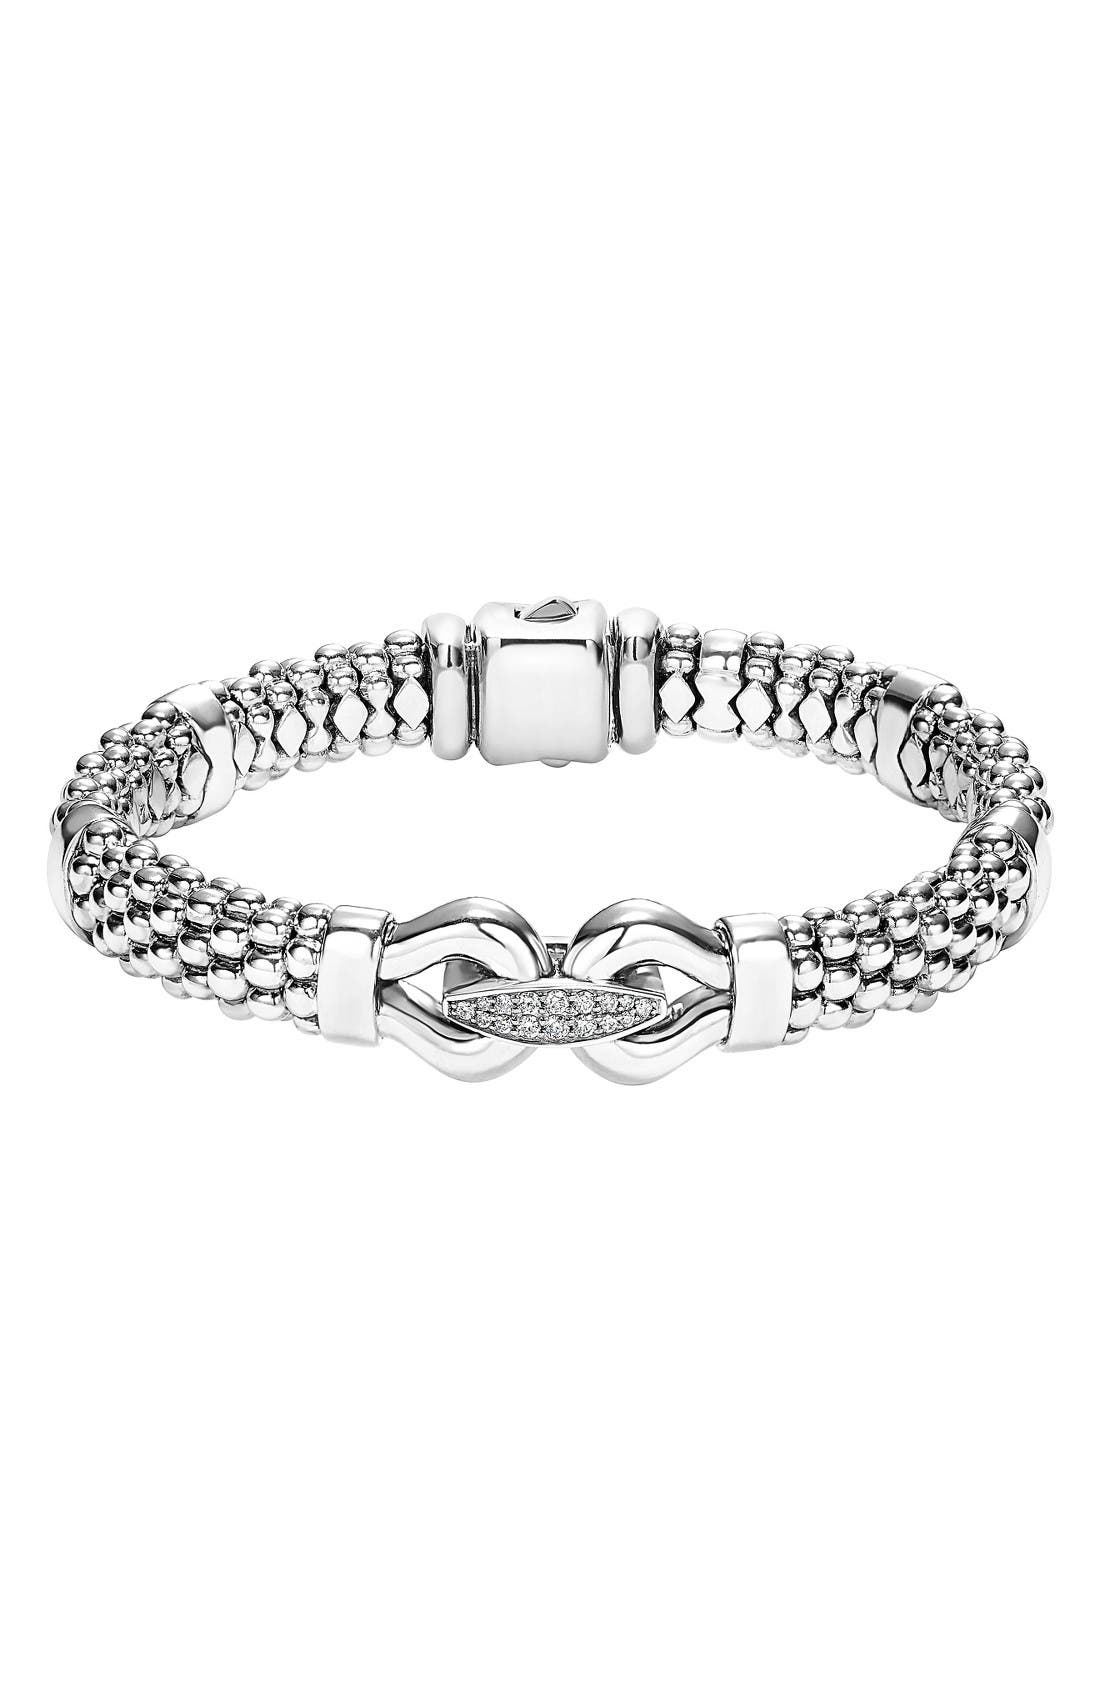 LAGOS 'Derby' Diamond Buckle Rope Bracelet